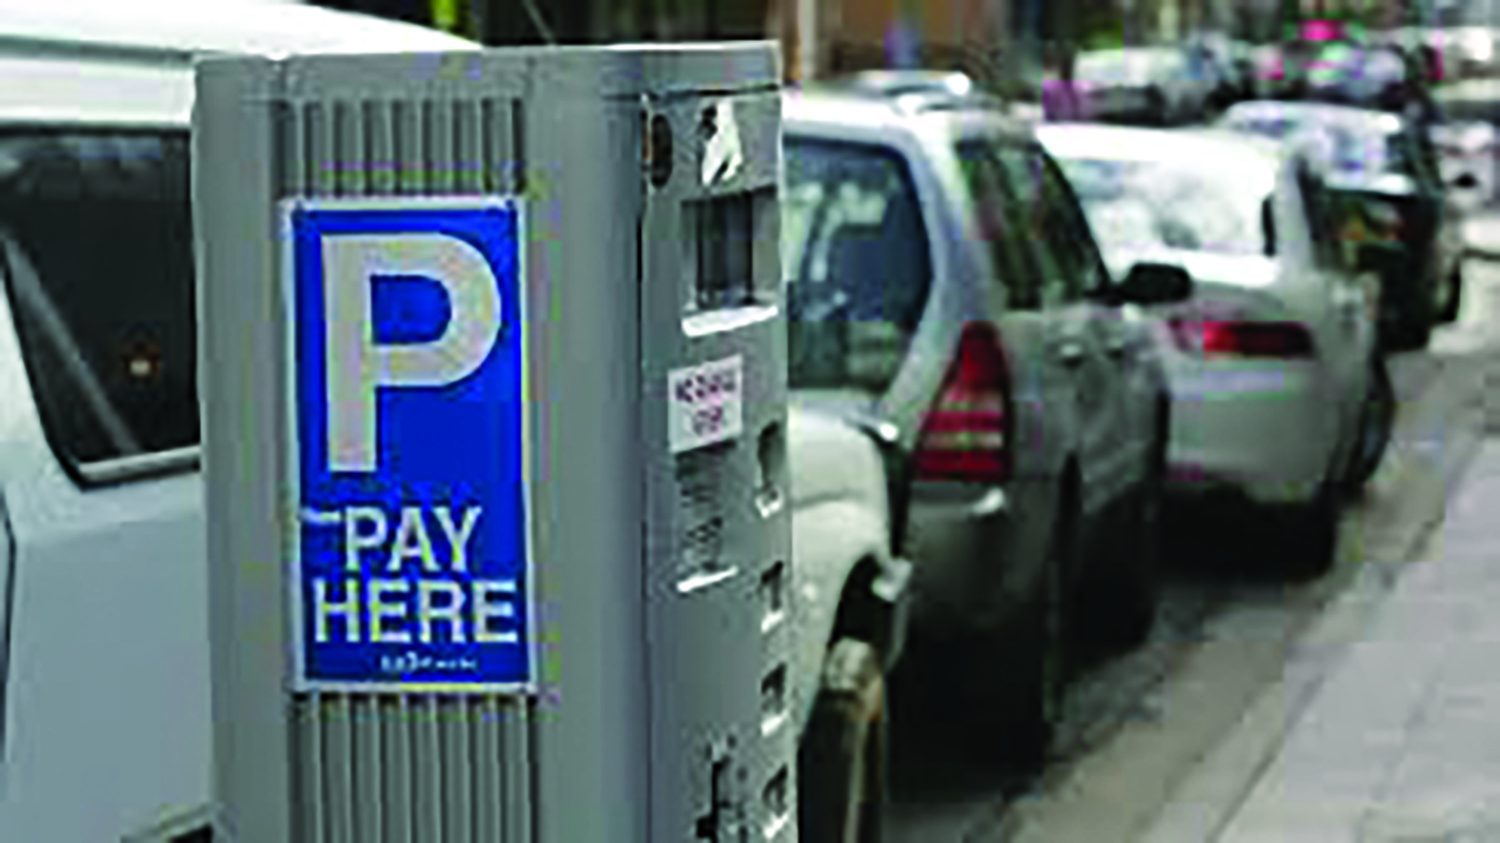 Parking Meter fiasco Plays Itself Out On Taxpayers' Dime